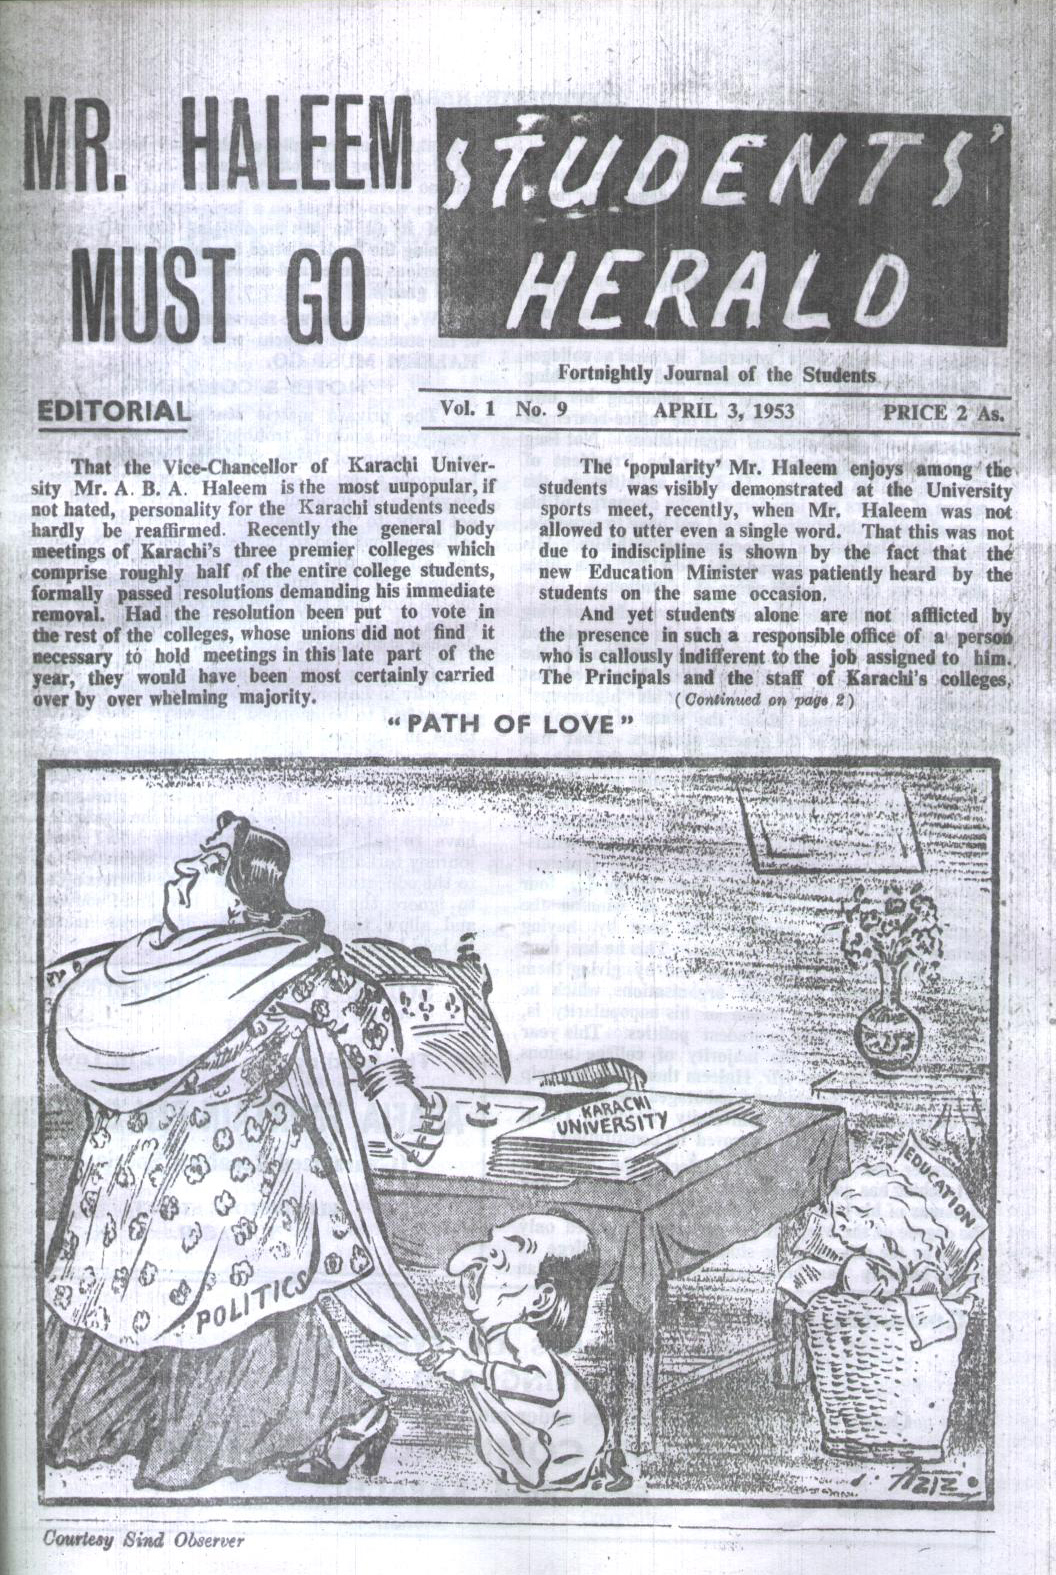 Students Herald, April 3, 1953